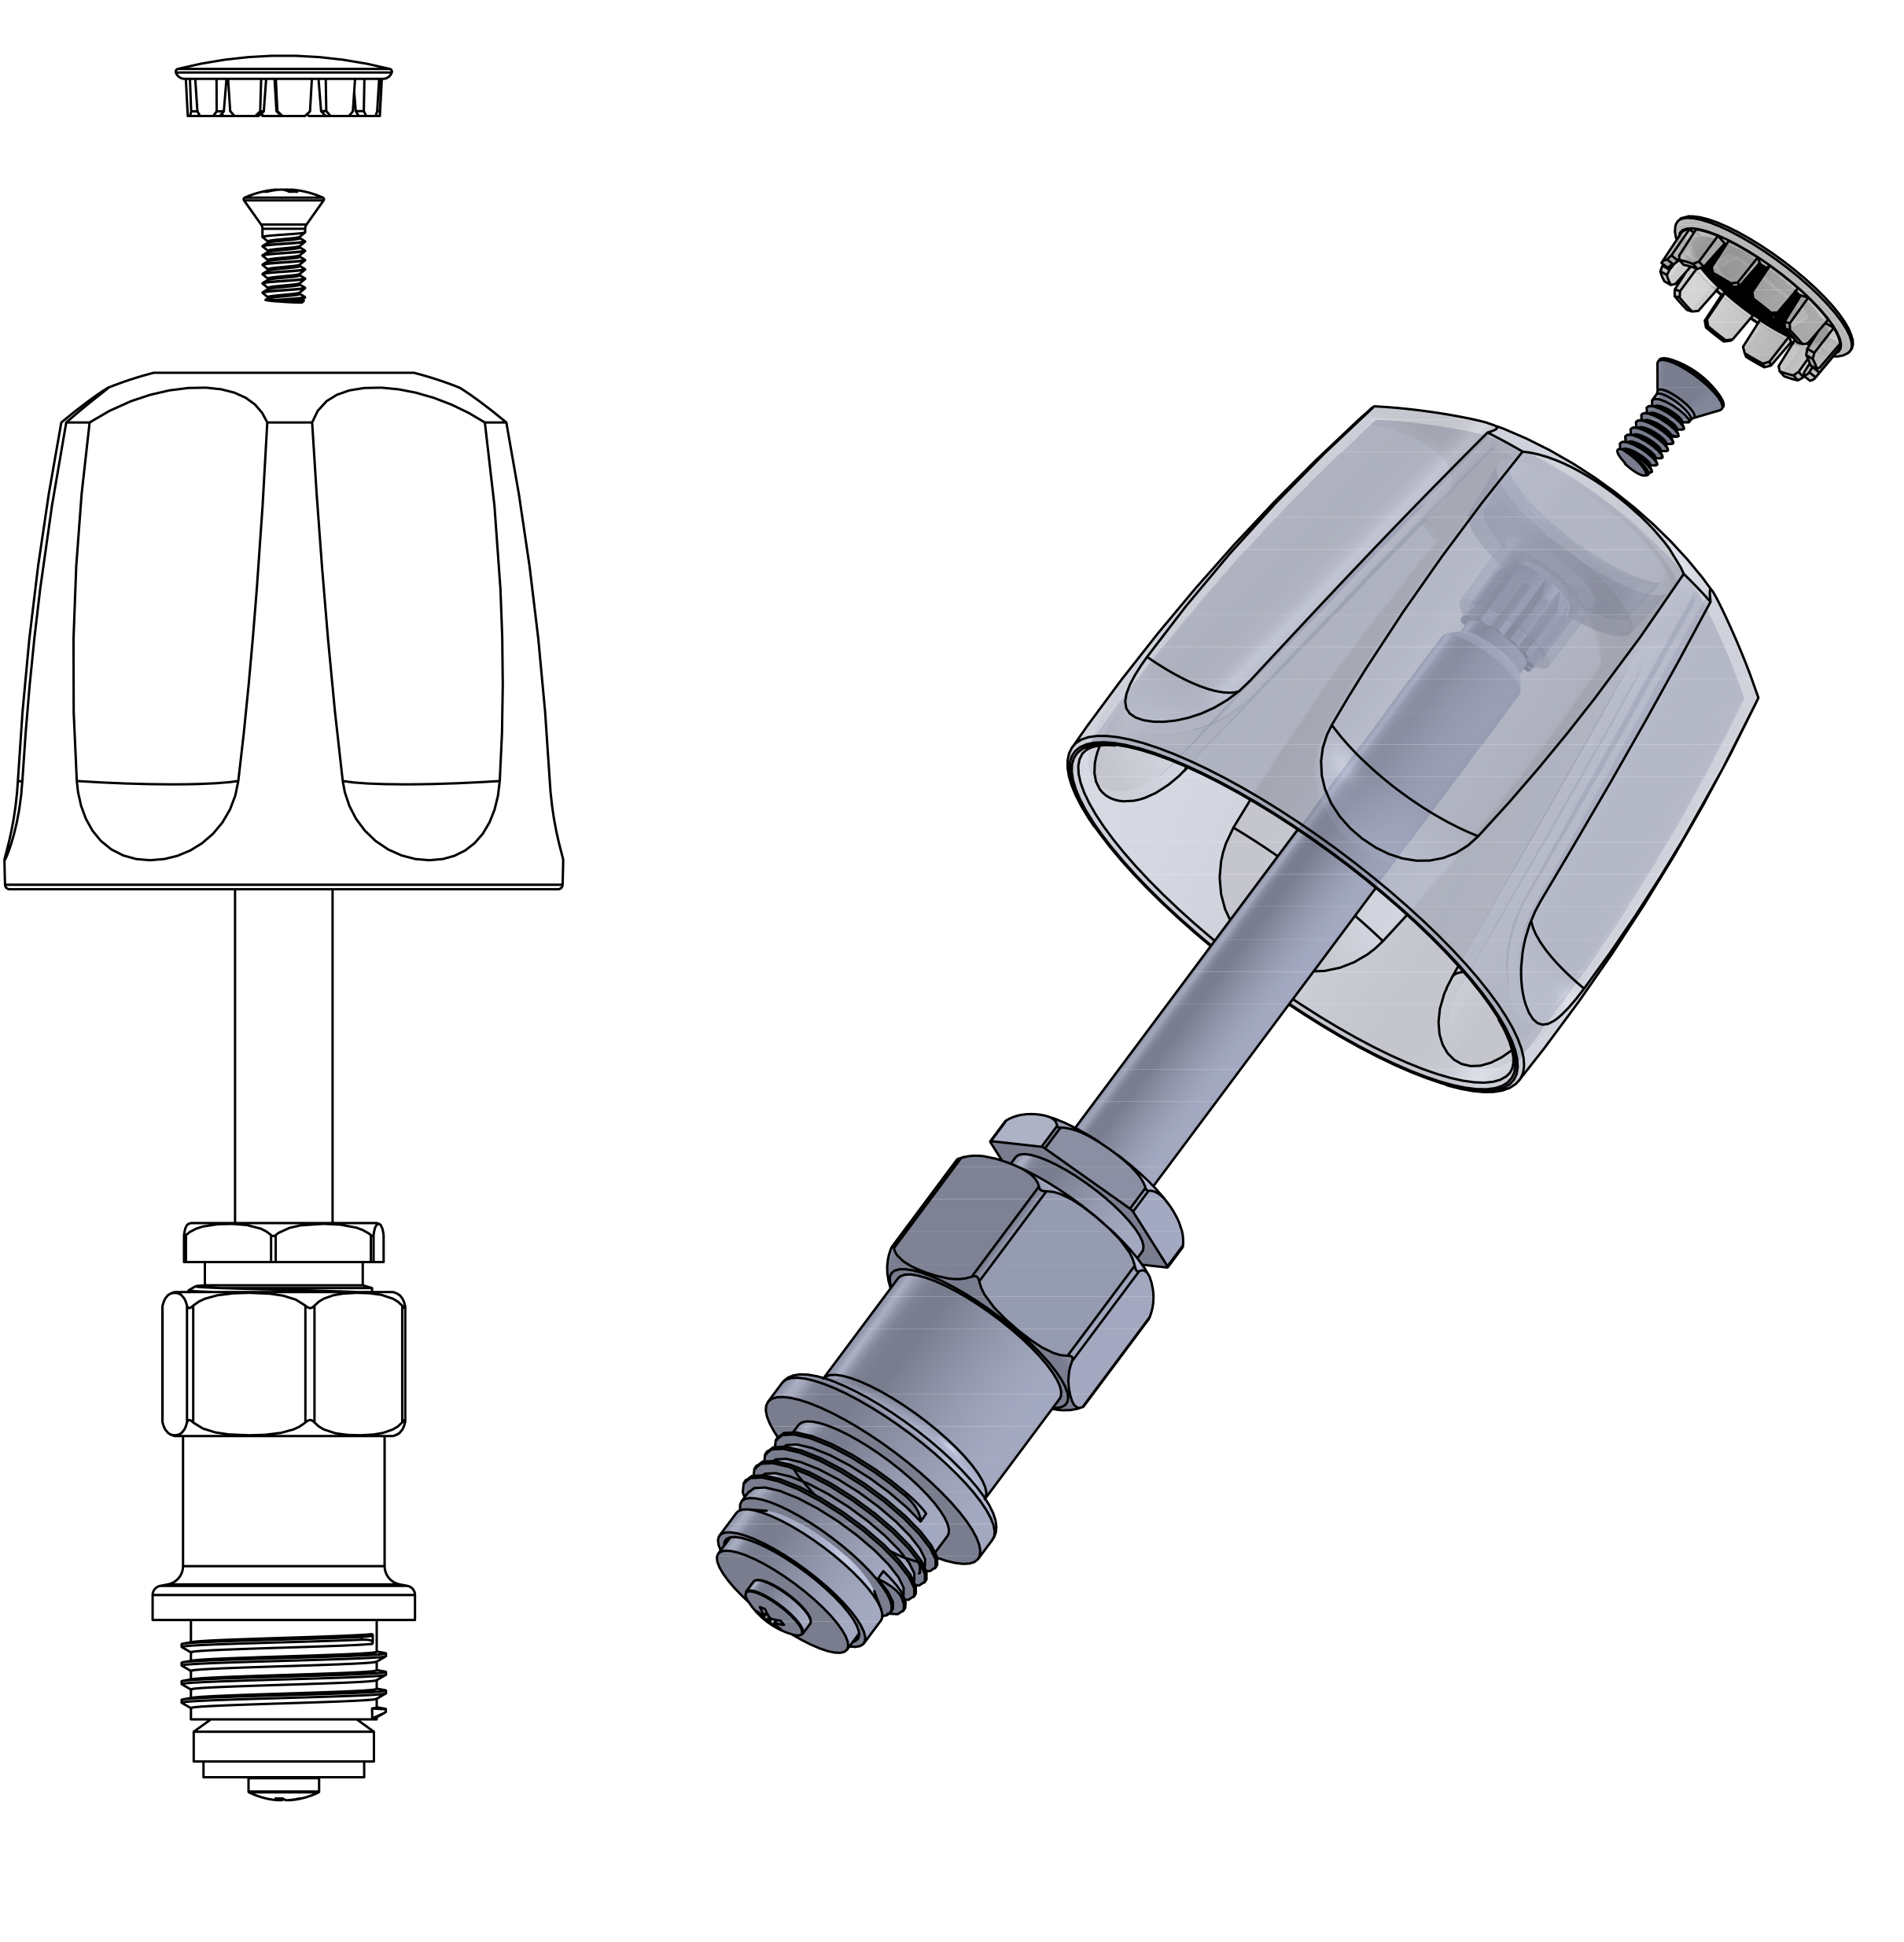 Drawing of Pfister stem and handle-Are Sheng